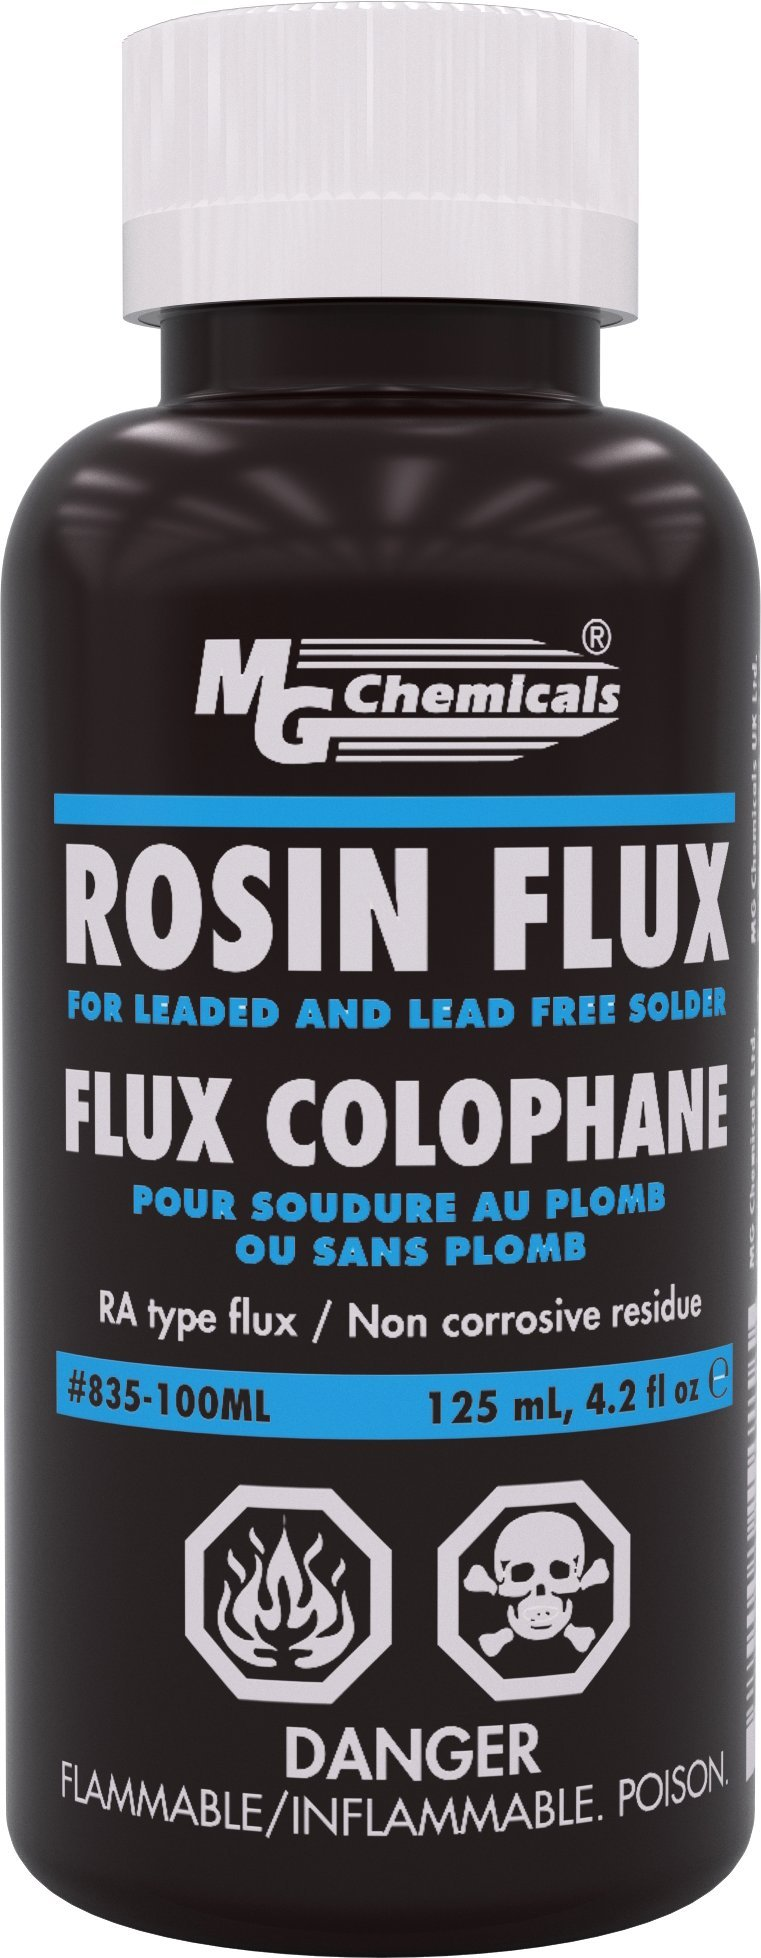 MG Chemicals Liquid Rosin Flux, for Leaded and Lead Free Solder, 125 ml Bottle